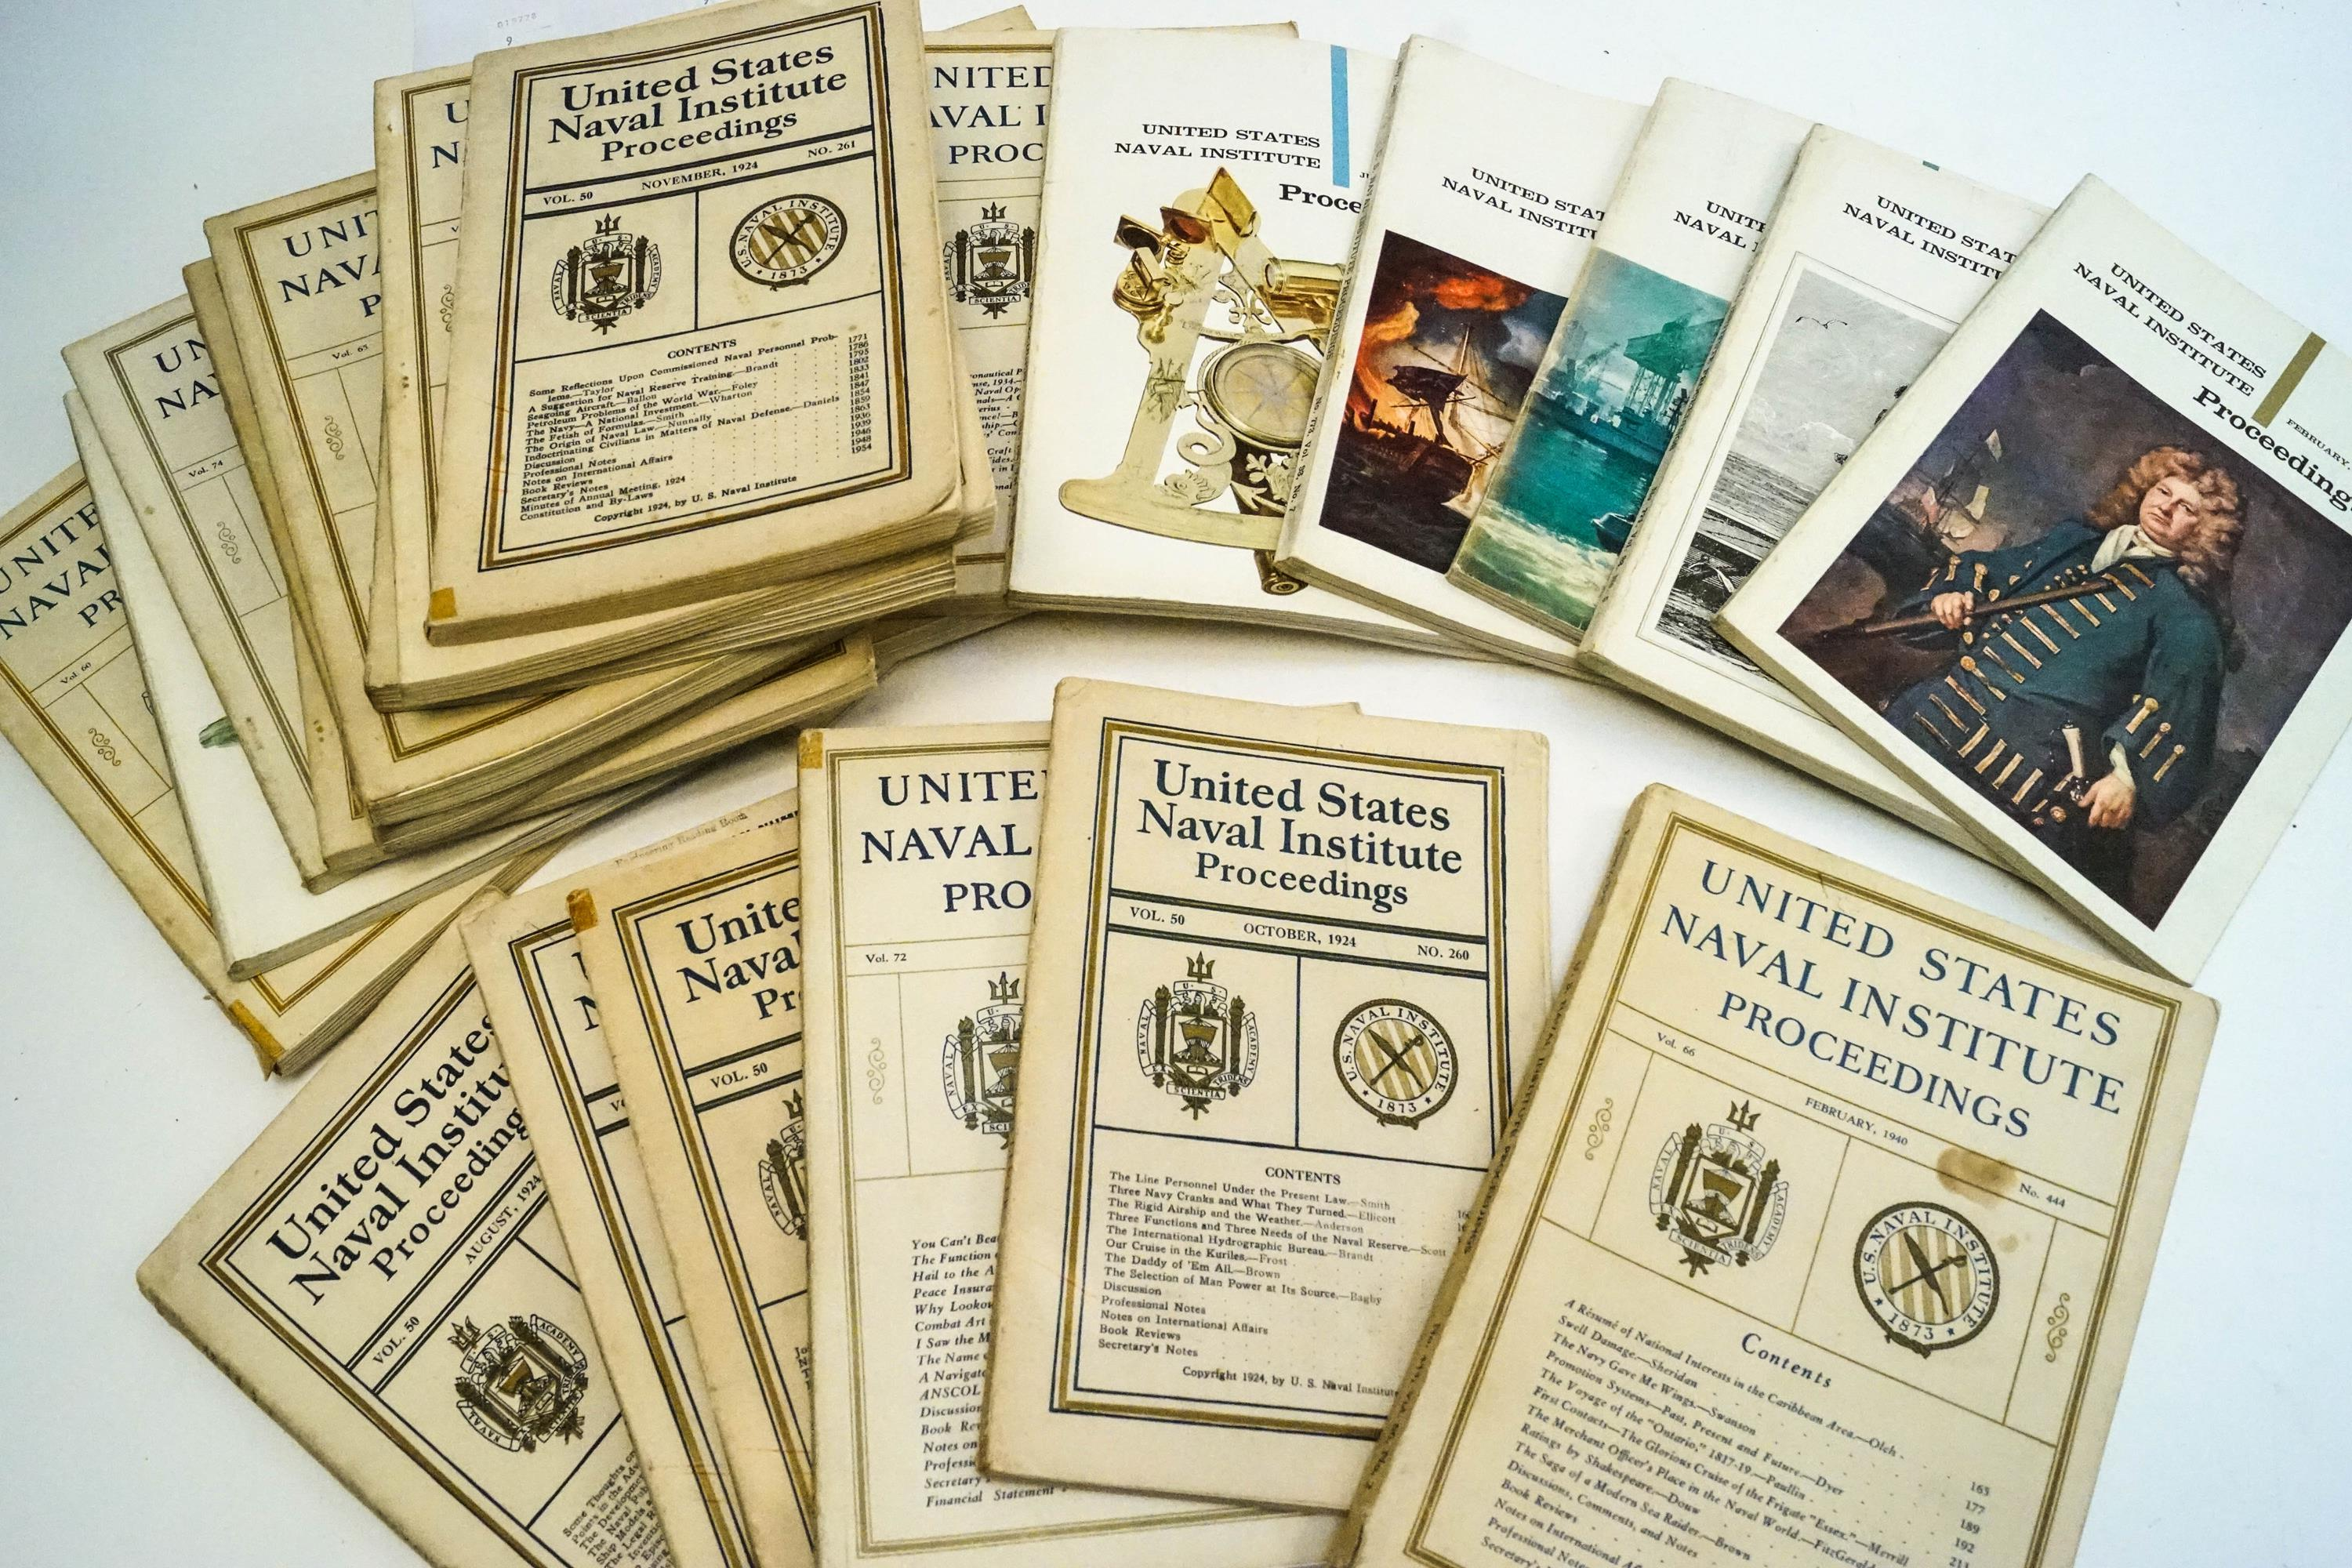 Lot 49 - A United States Naval Institute proceedings